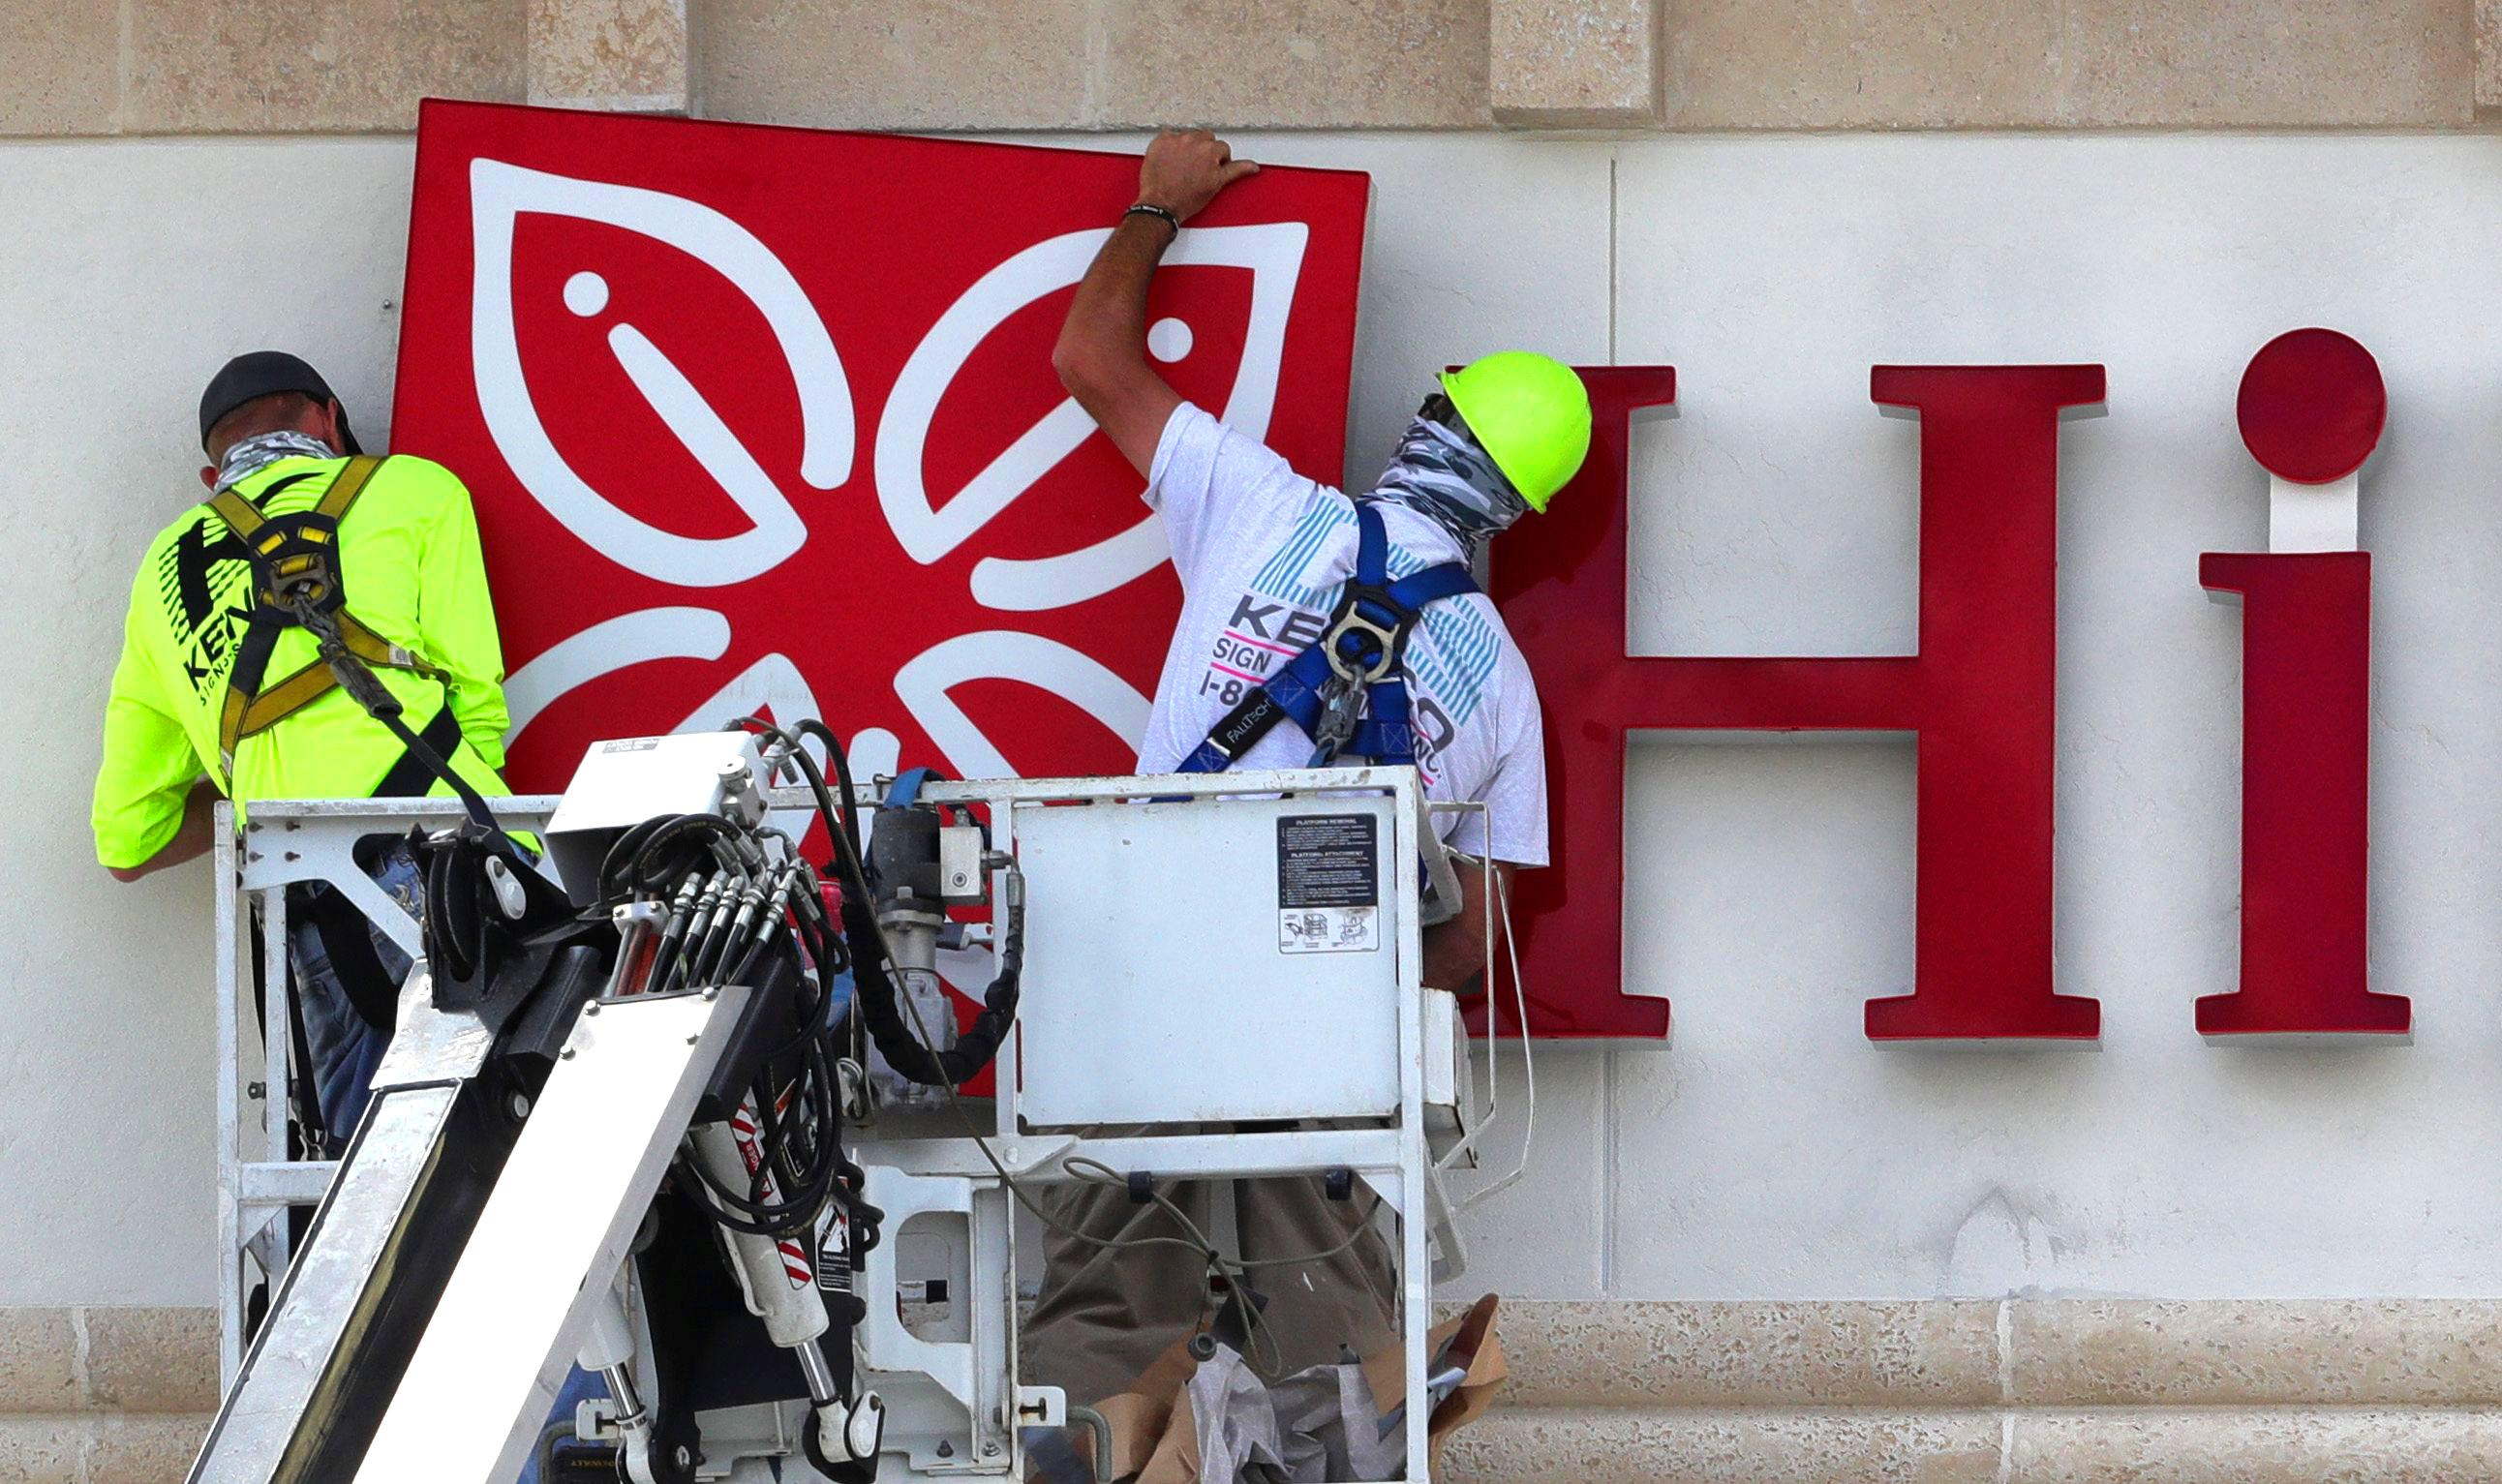 Why Hilton could be best positioned to survive the coronavirus downturn